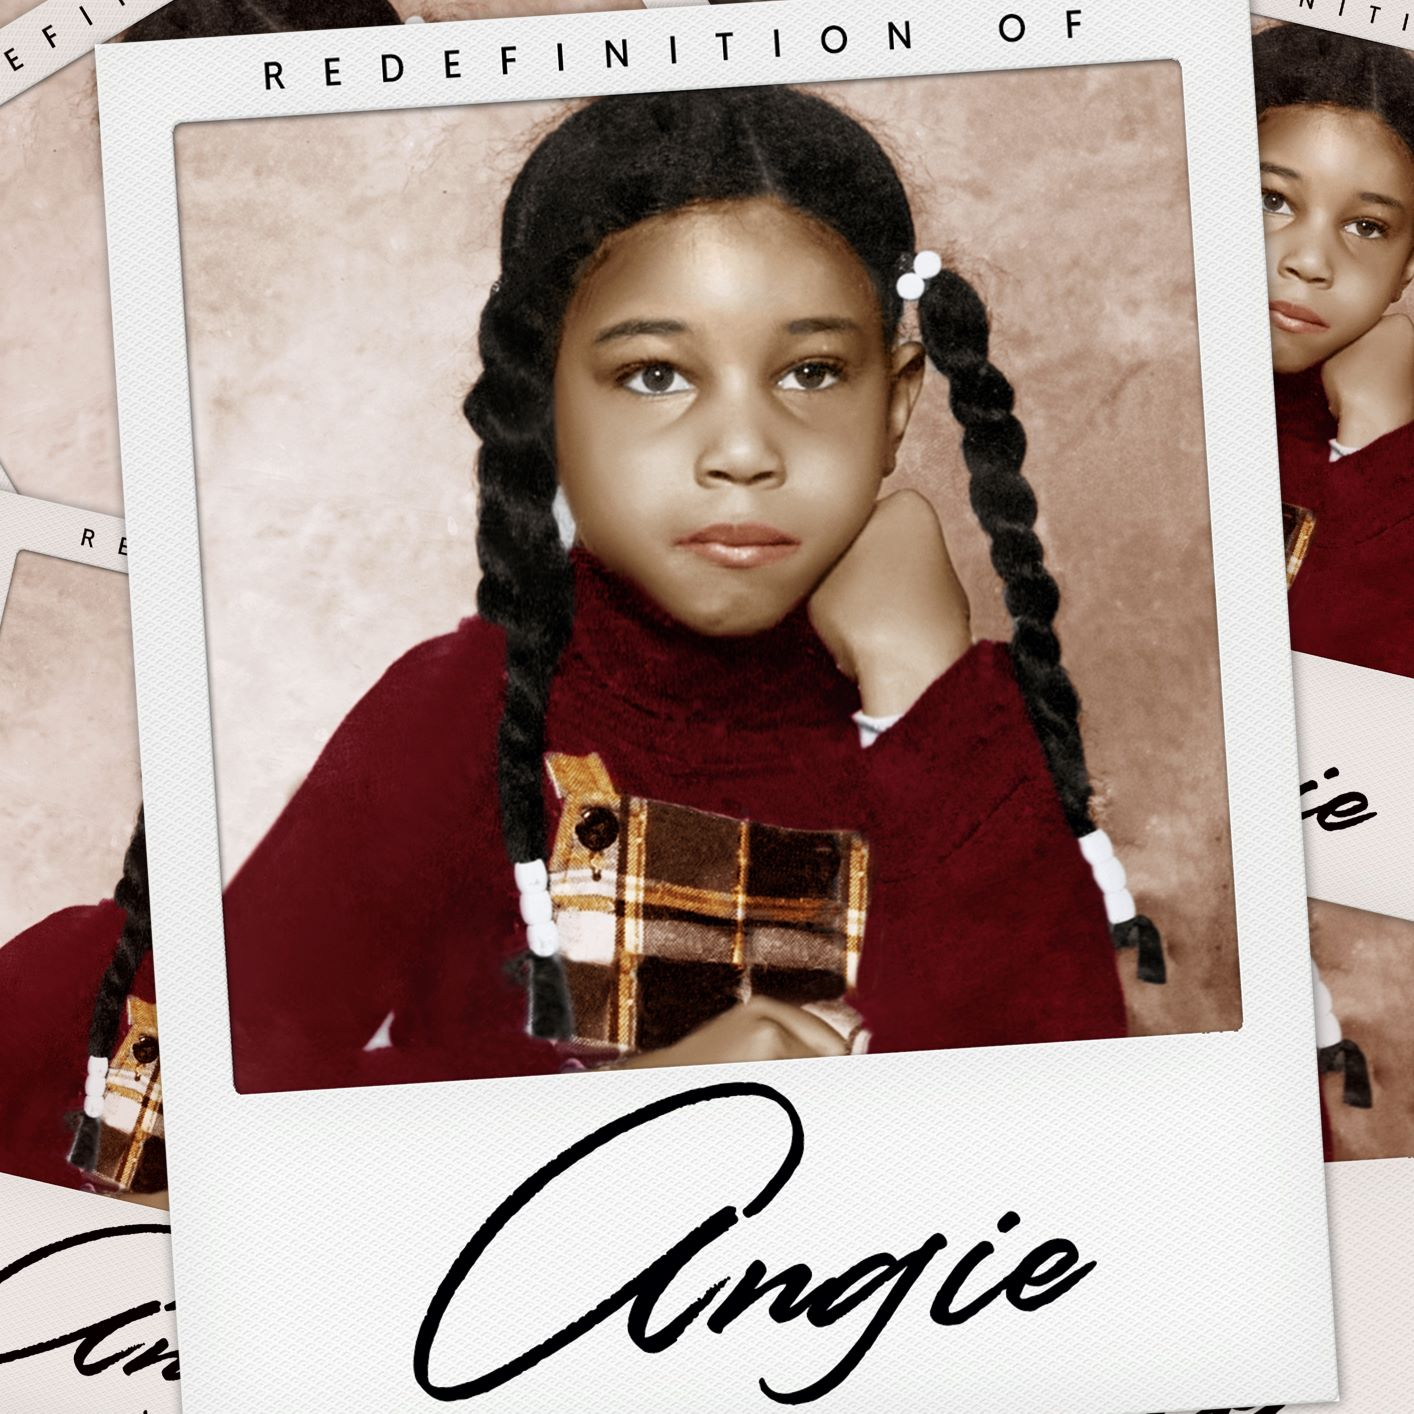 Redefinition of Angie Album - Angelia Williams